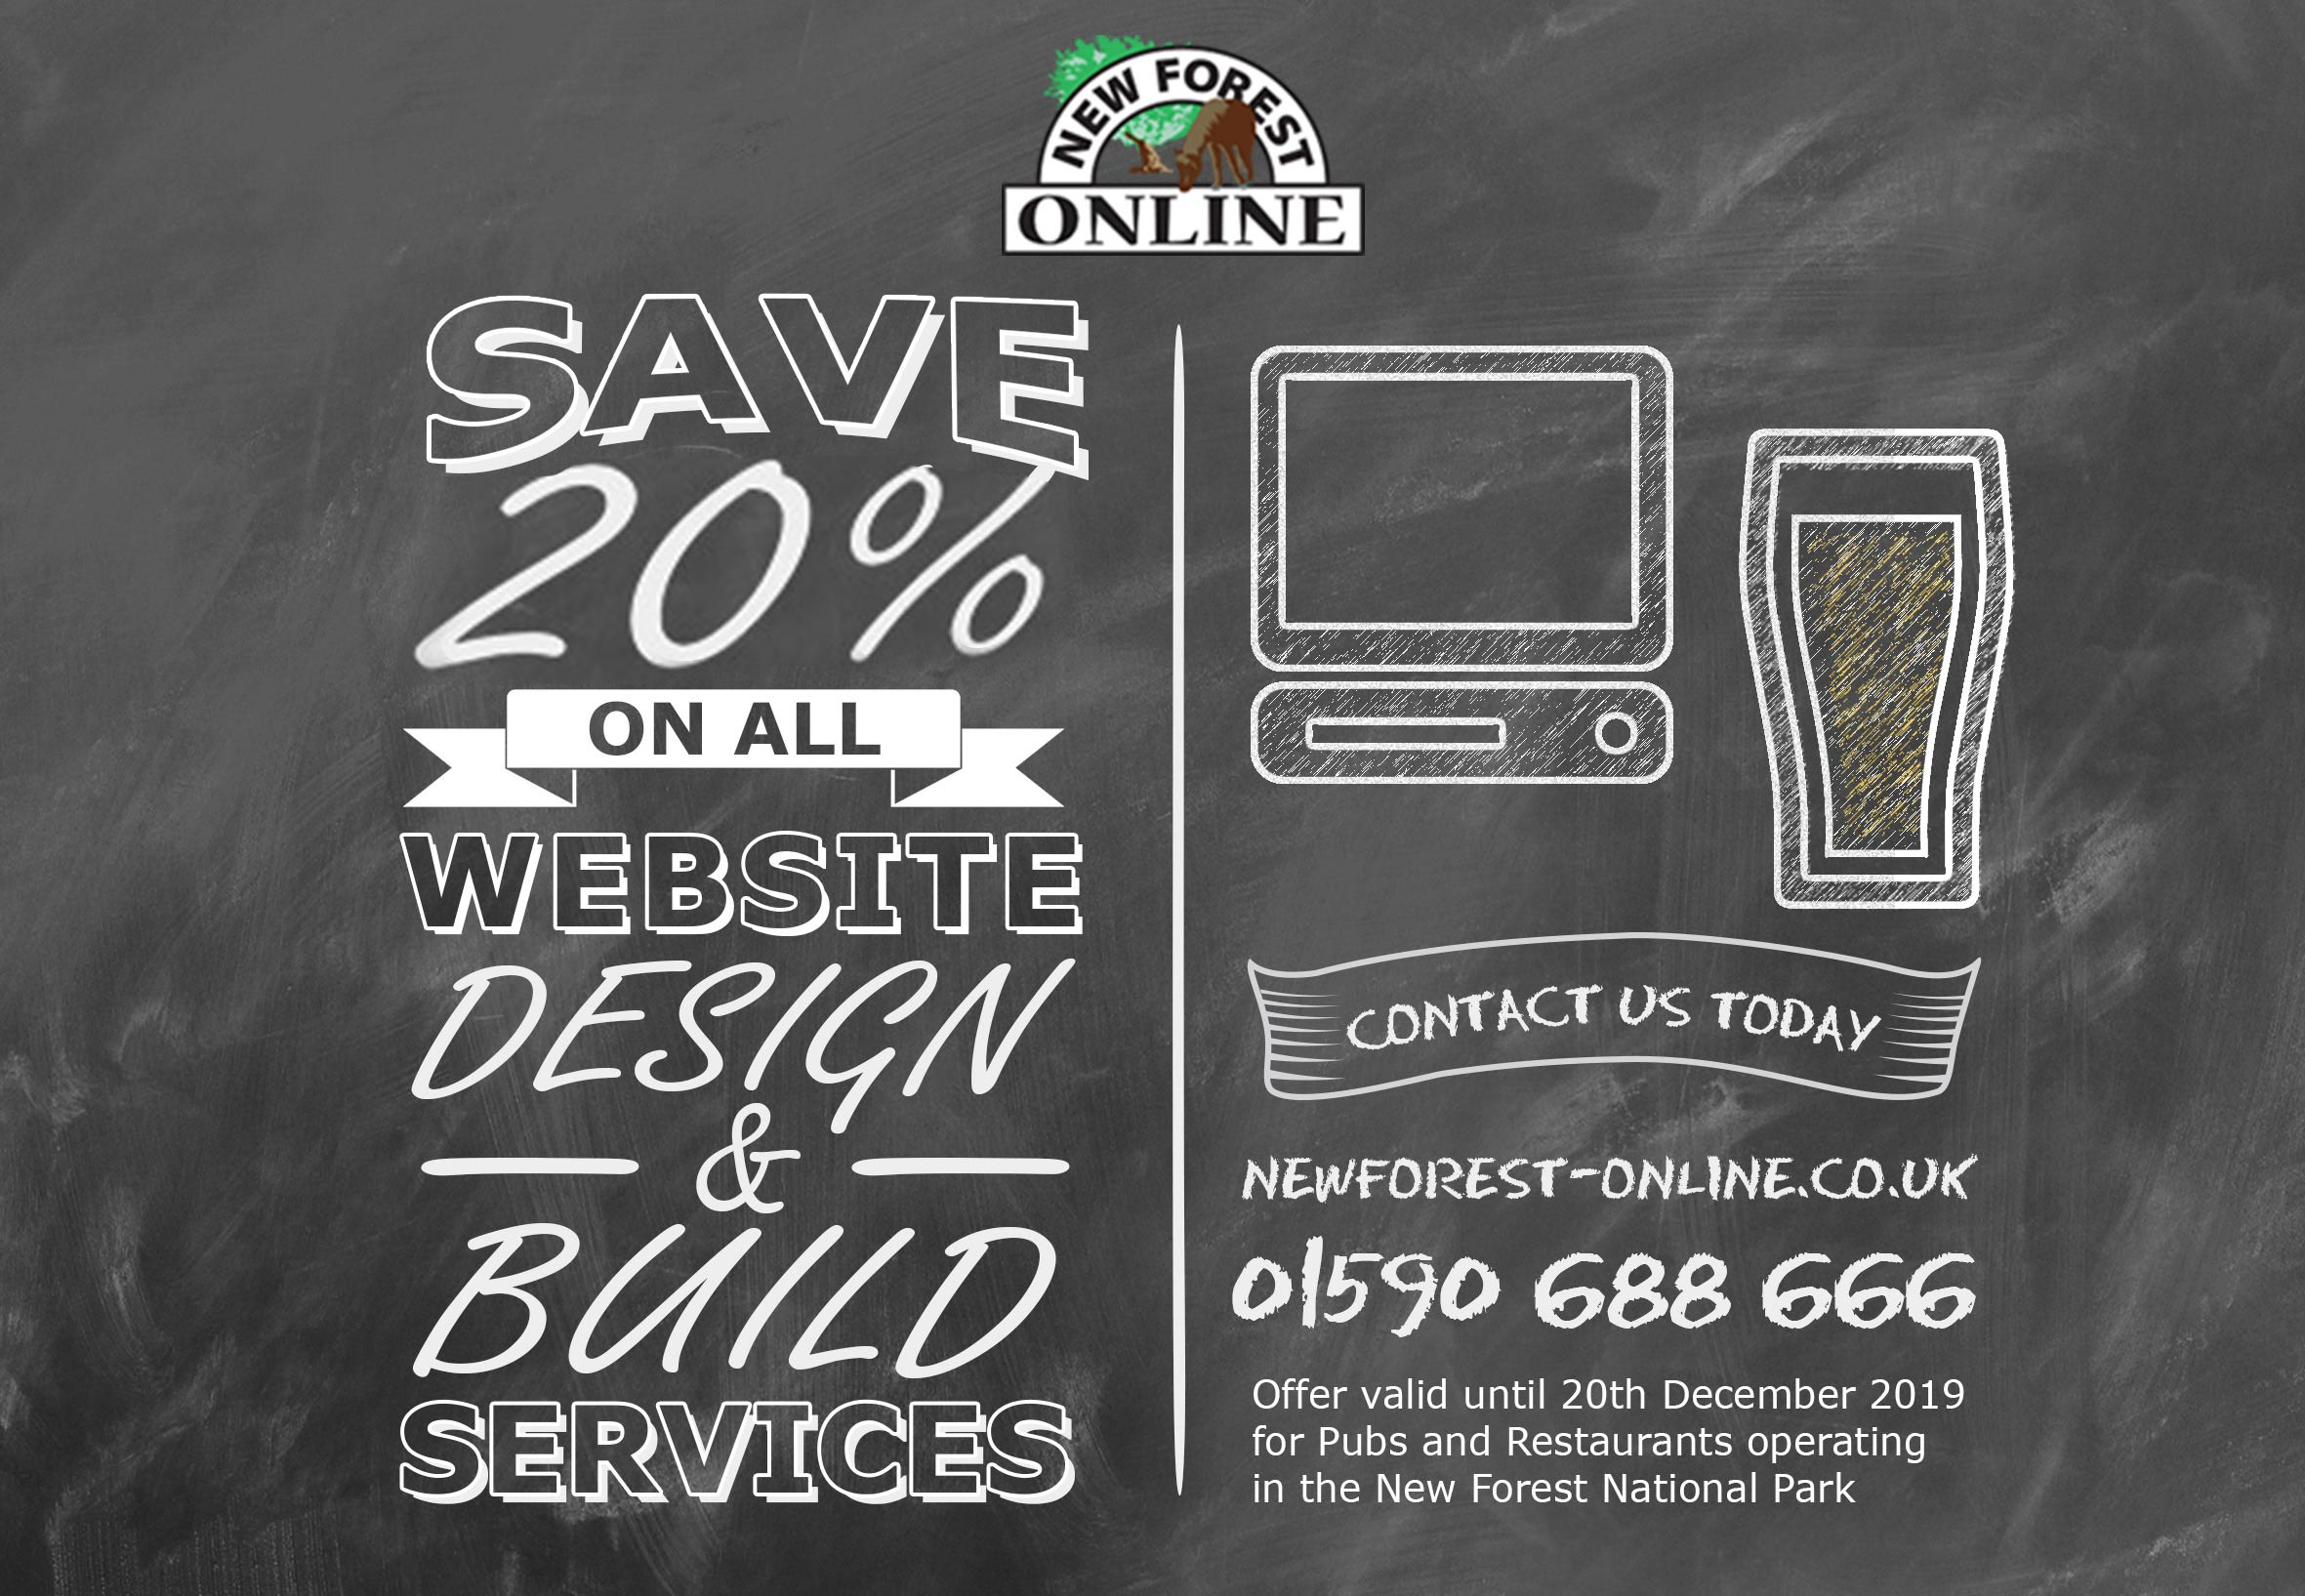 save 20% off website design services new forest online